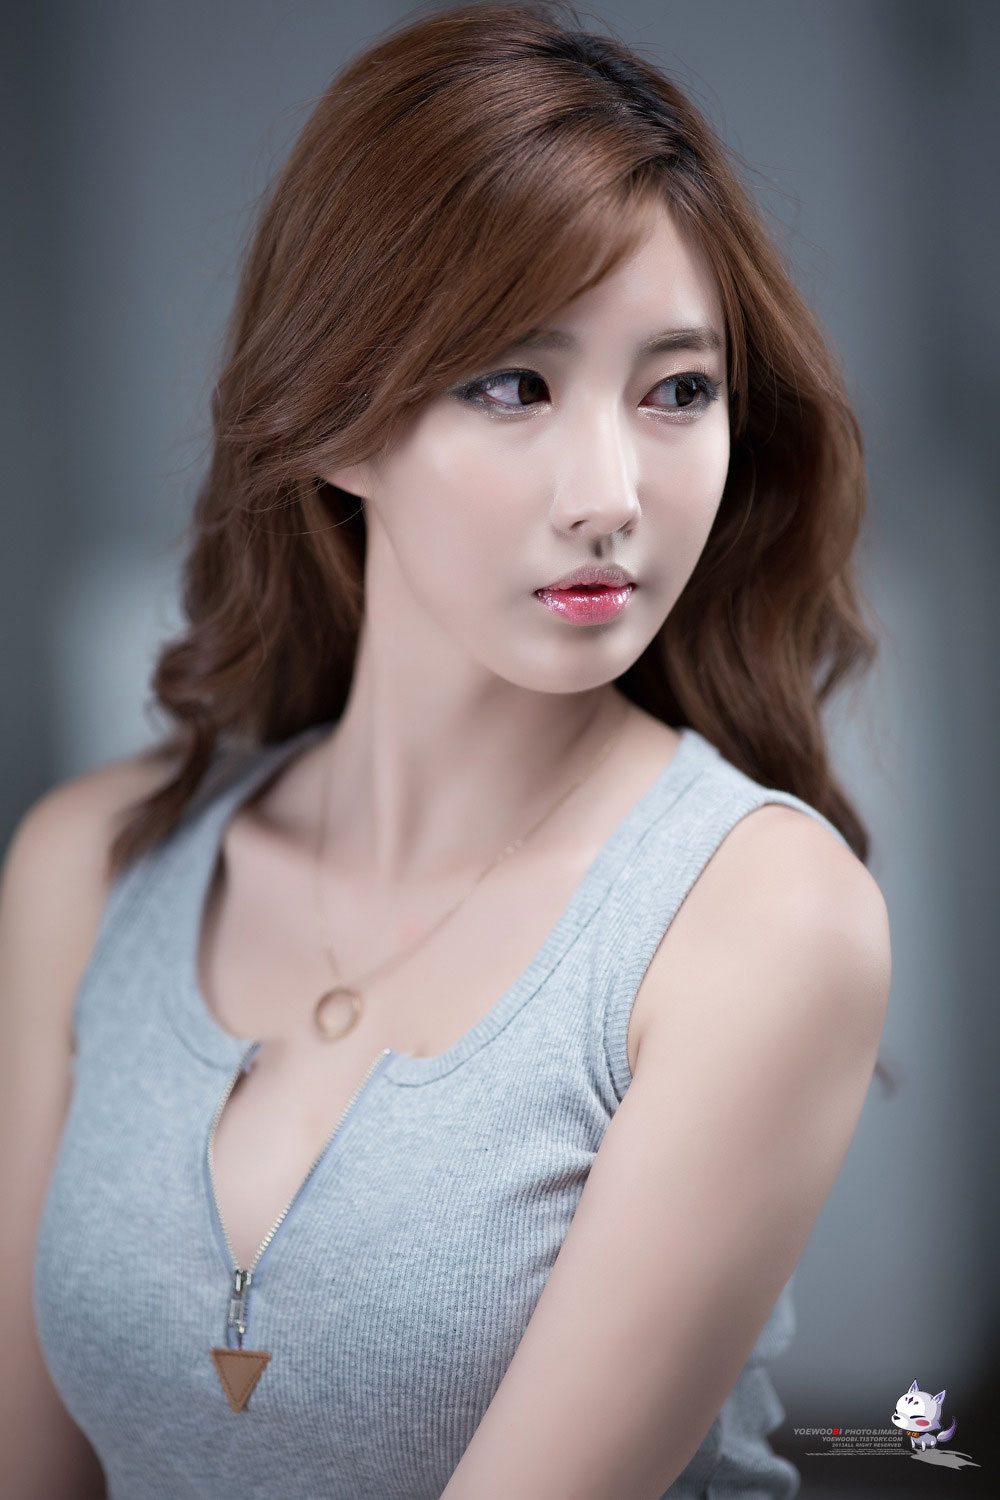 Korean model Shin Se Ha